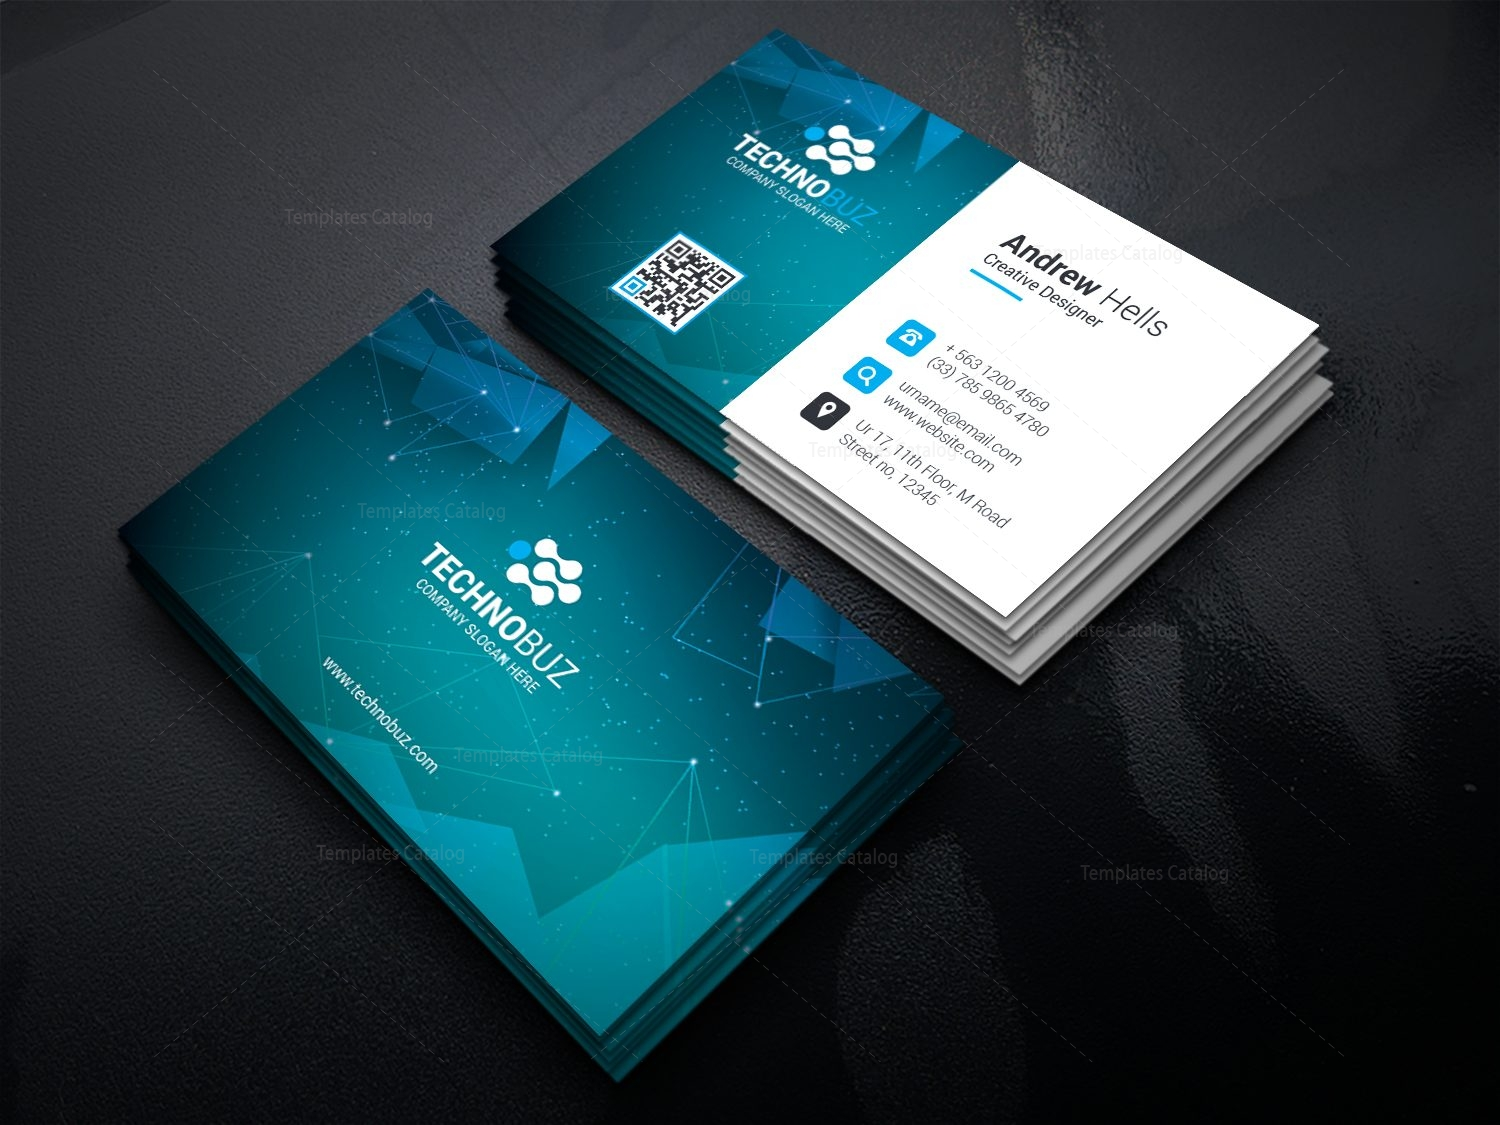 Space technology business card template 000752 template catalog space technology business card template 2 flashek Images